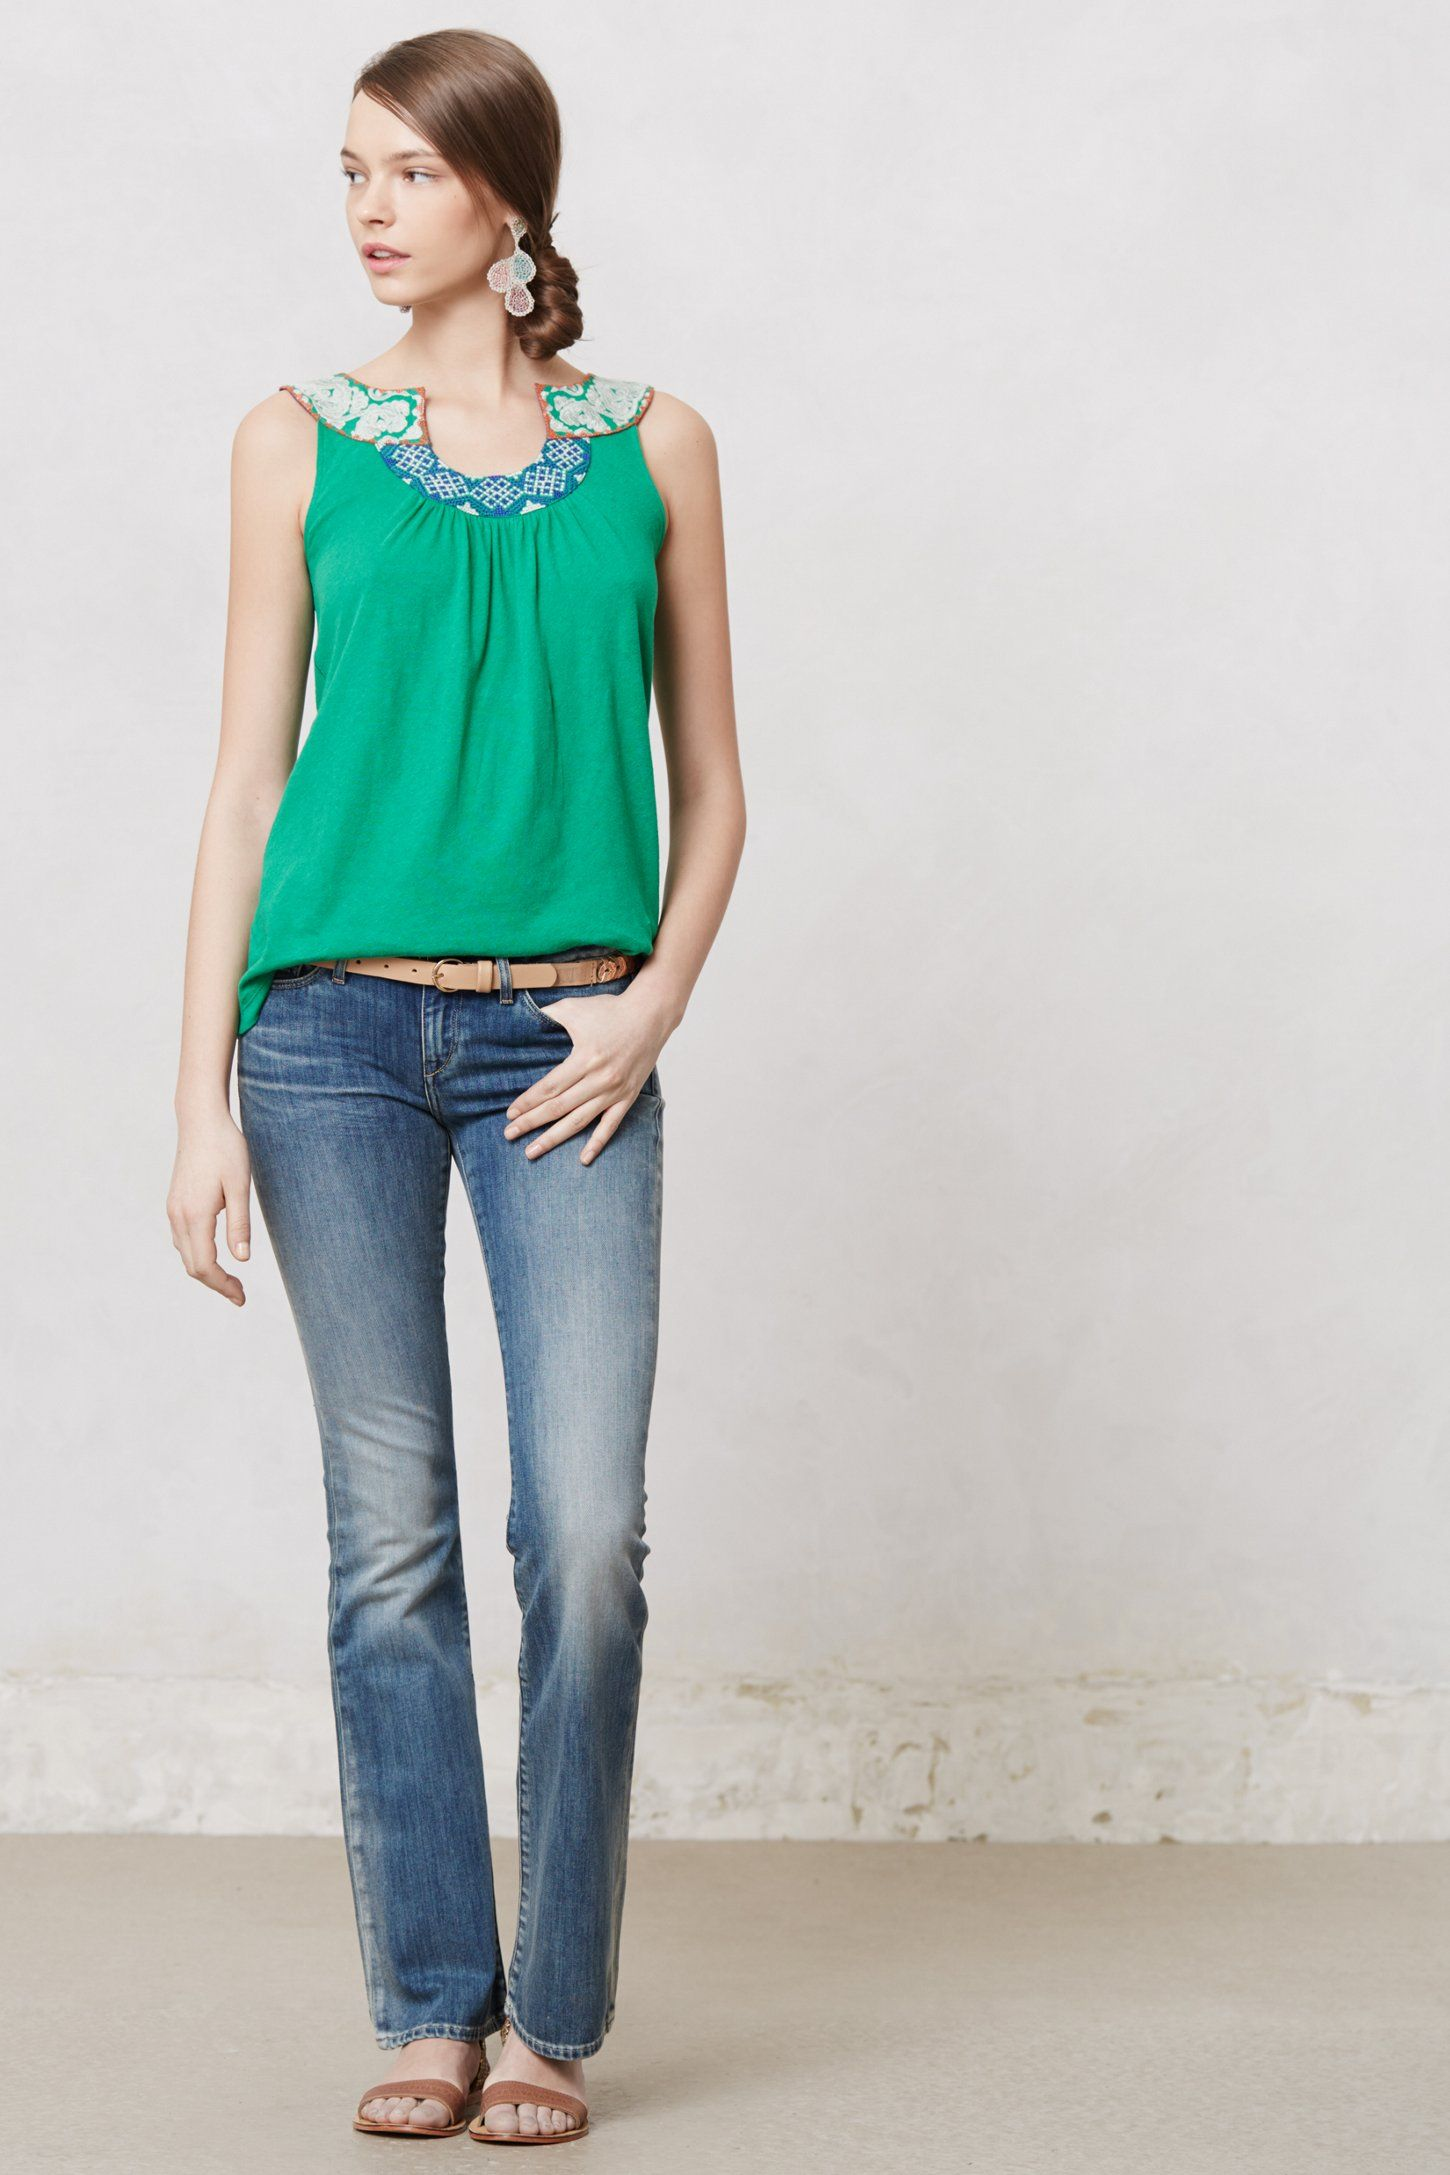 Embroidered ALine Tank Clothes, Petite jeans, Fashion